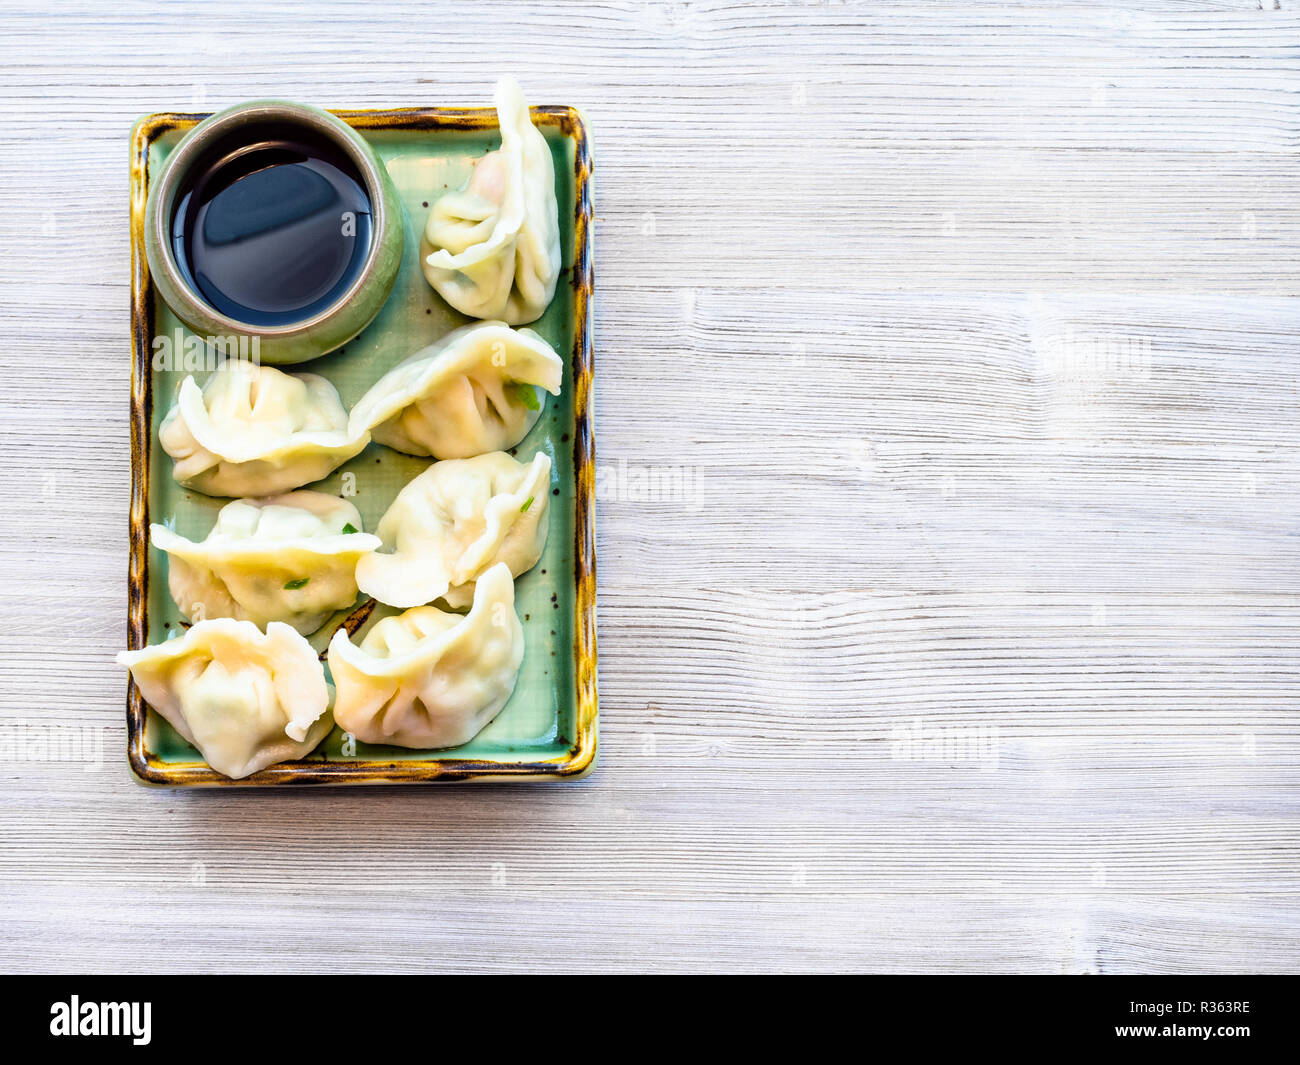 Chinese cuisine dish - served portion of Dumplings with three fillings (shrimp, egg and greens) on green plate on wooden table with copyspace - Stock Image